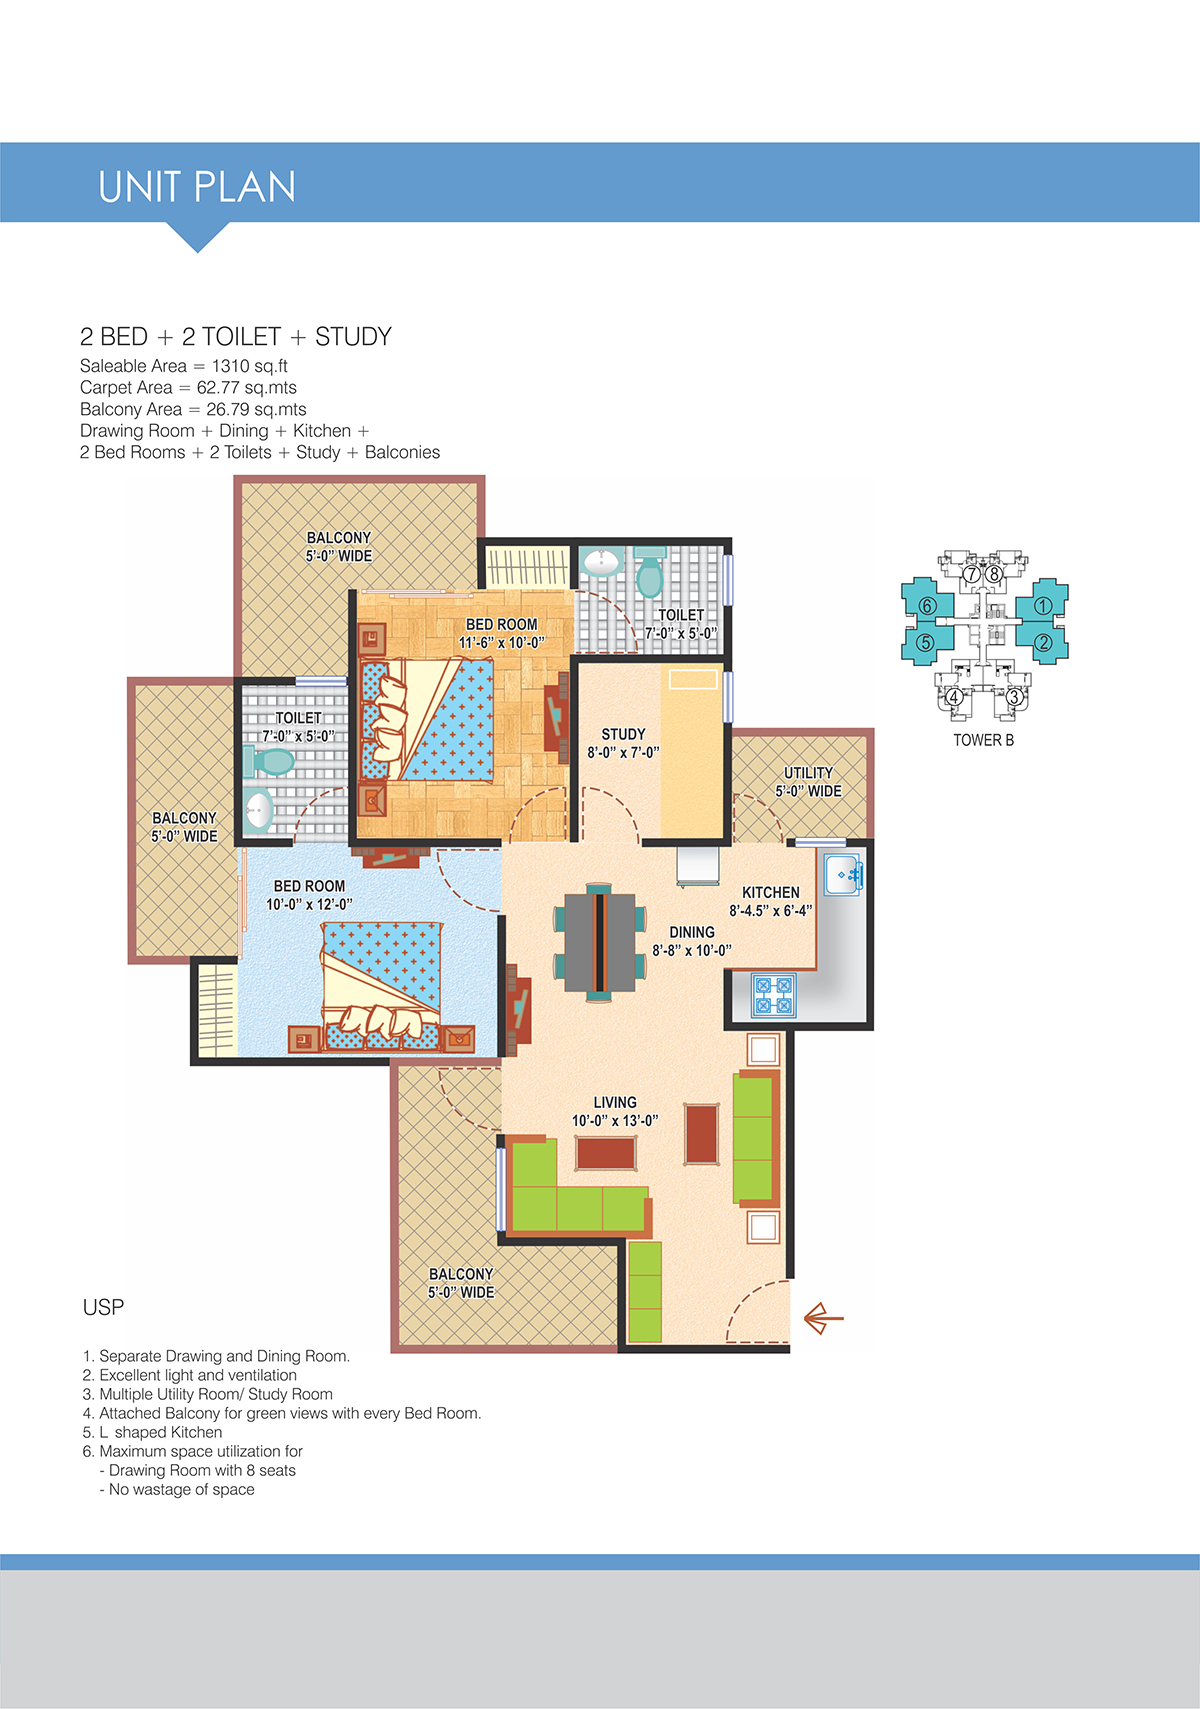 2BHK Floor Plan(1310sq ft)